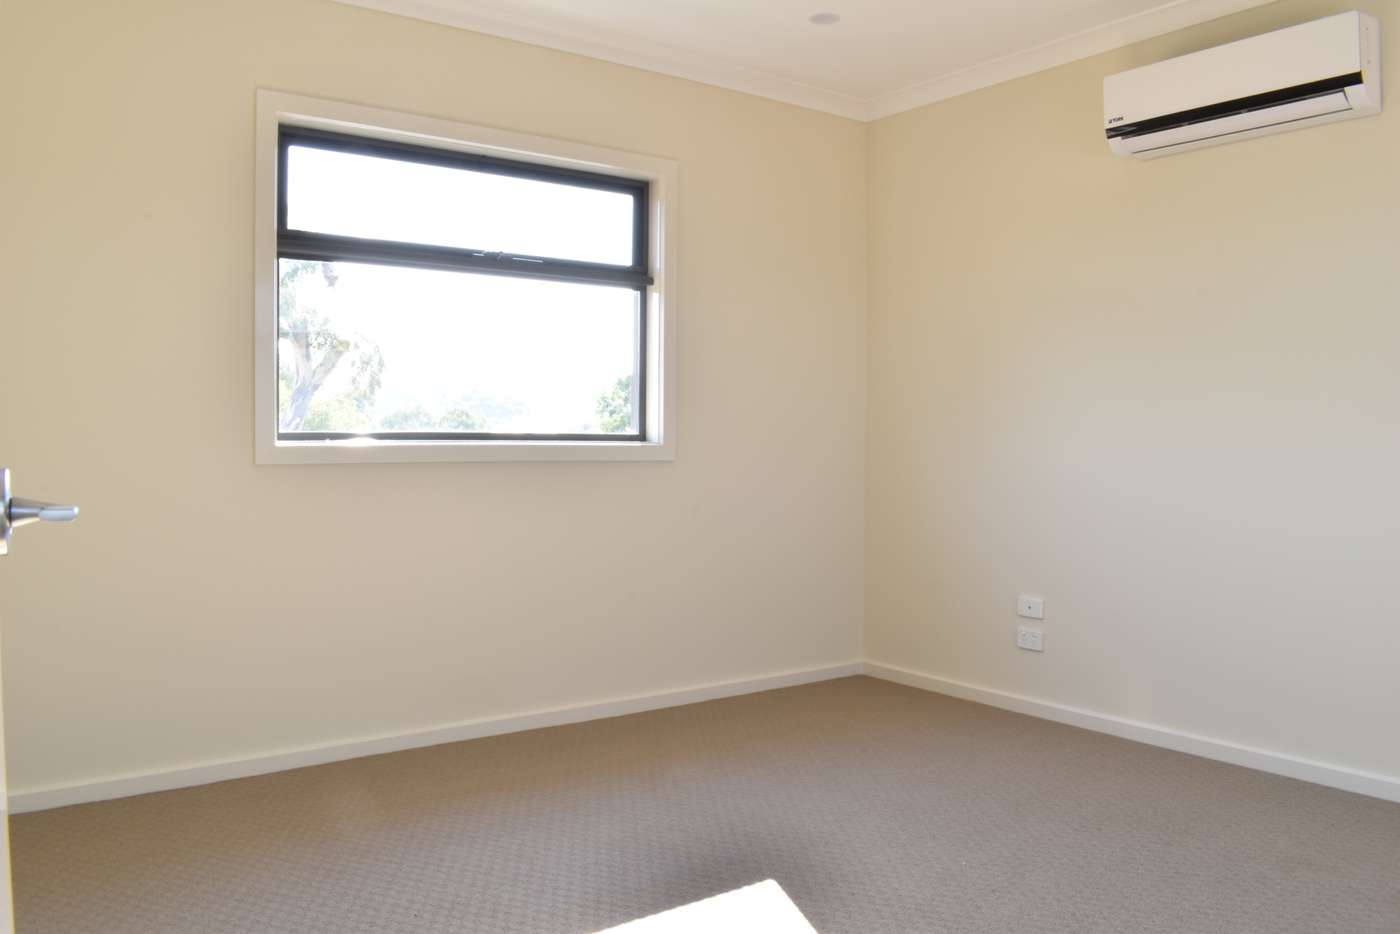 Sixth view of Homely townhouse listing, 2/2 St Leger Place, Epping VIC 3076